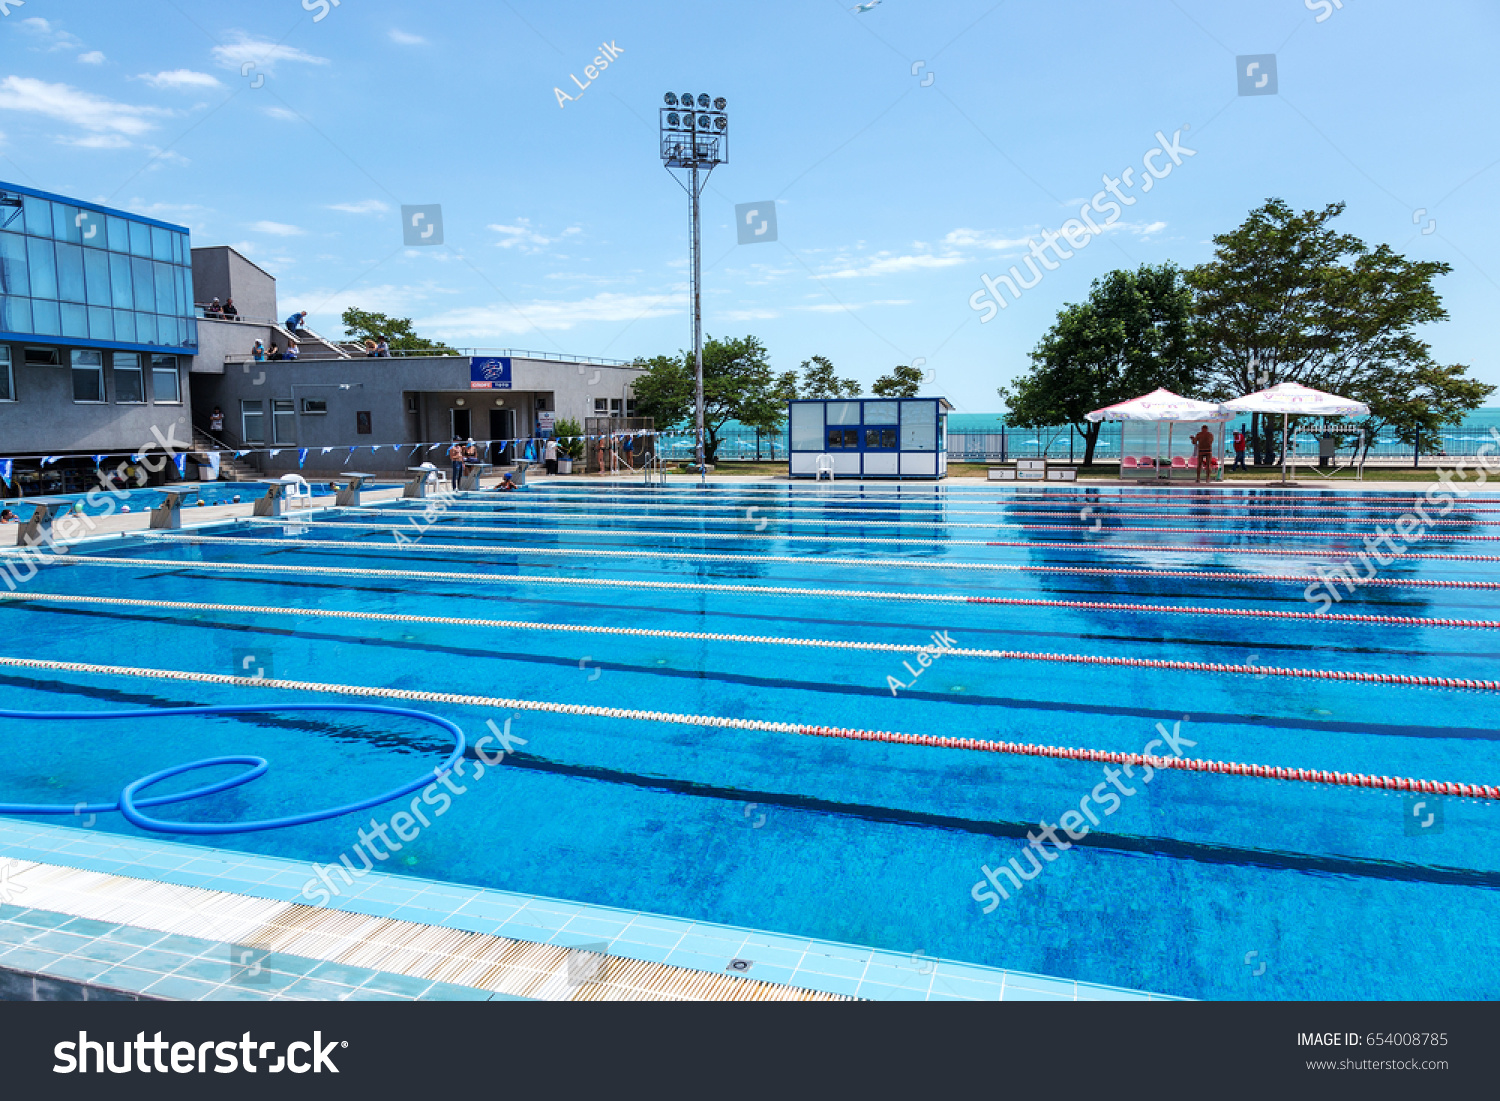 VARNA, BULGARIA   CIRCA 2017: Sports Swimming Pool With Dividing Paths For  Competition Without